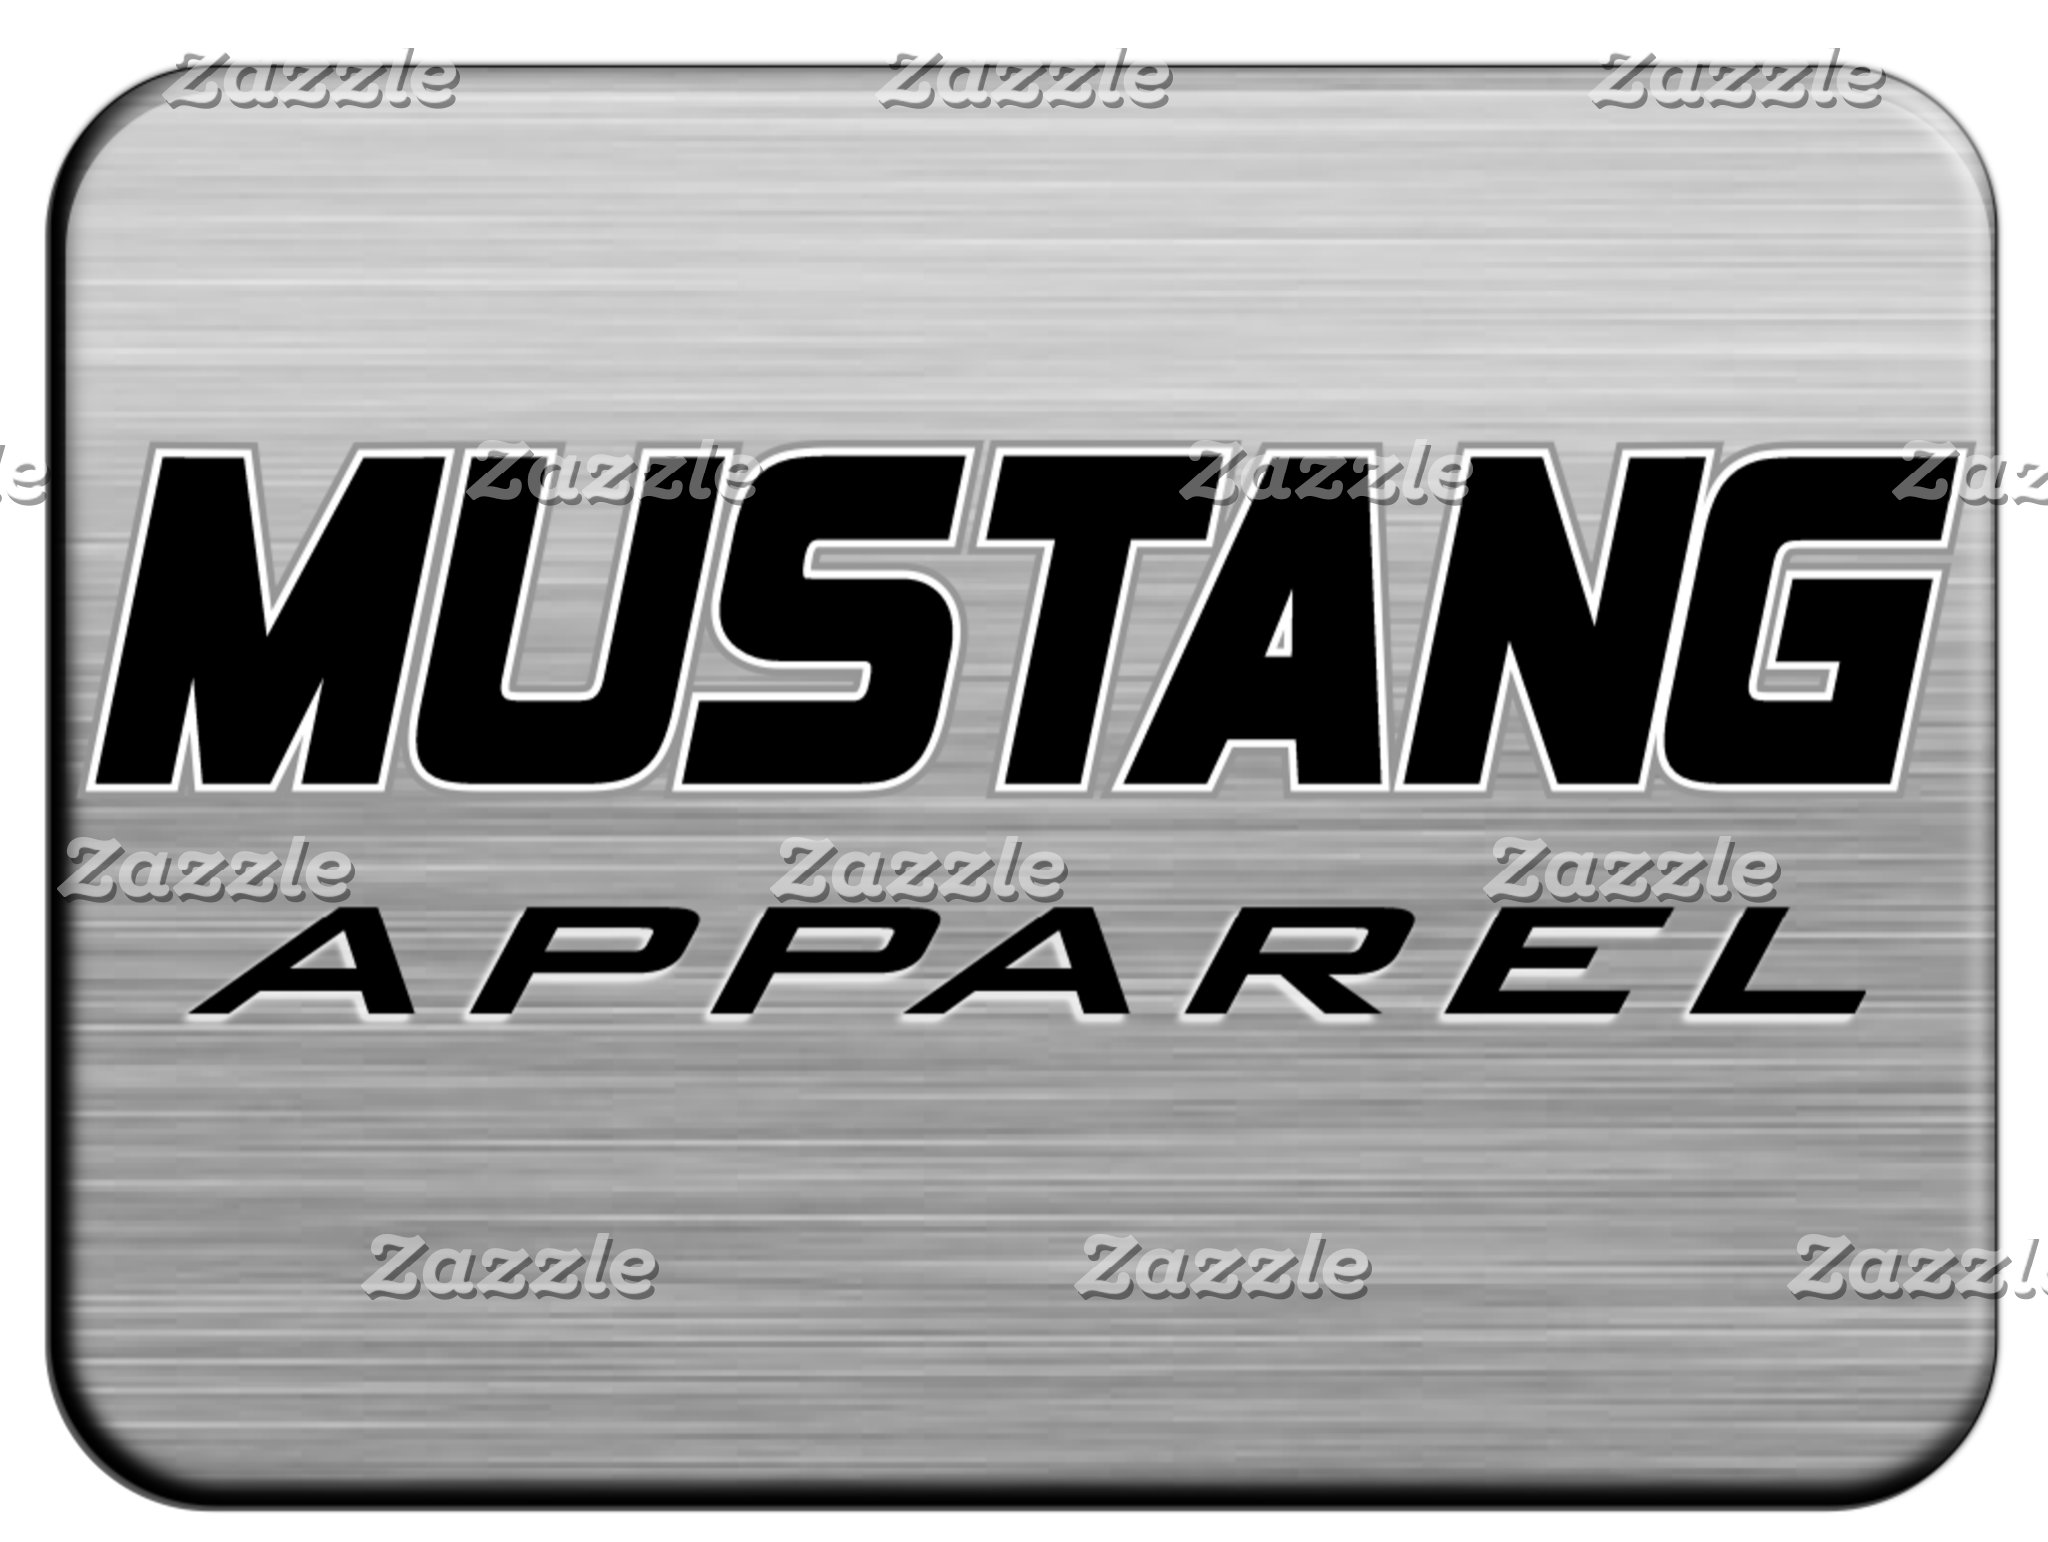 Ford Mustang Apparel